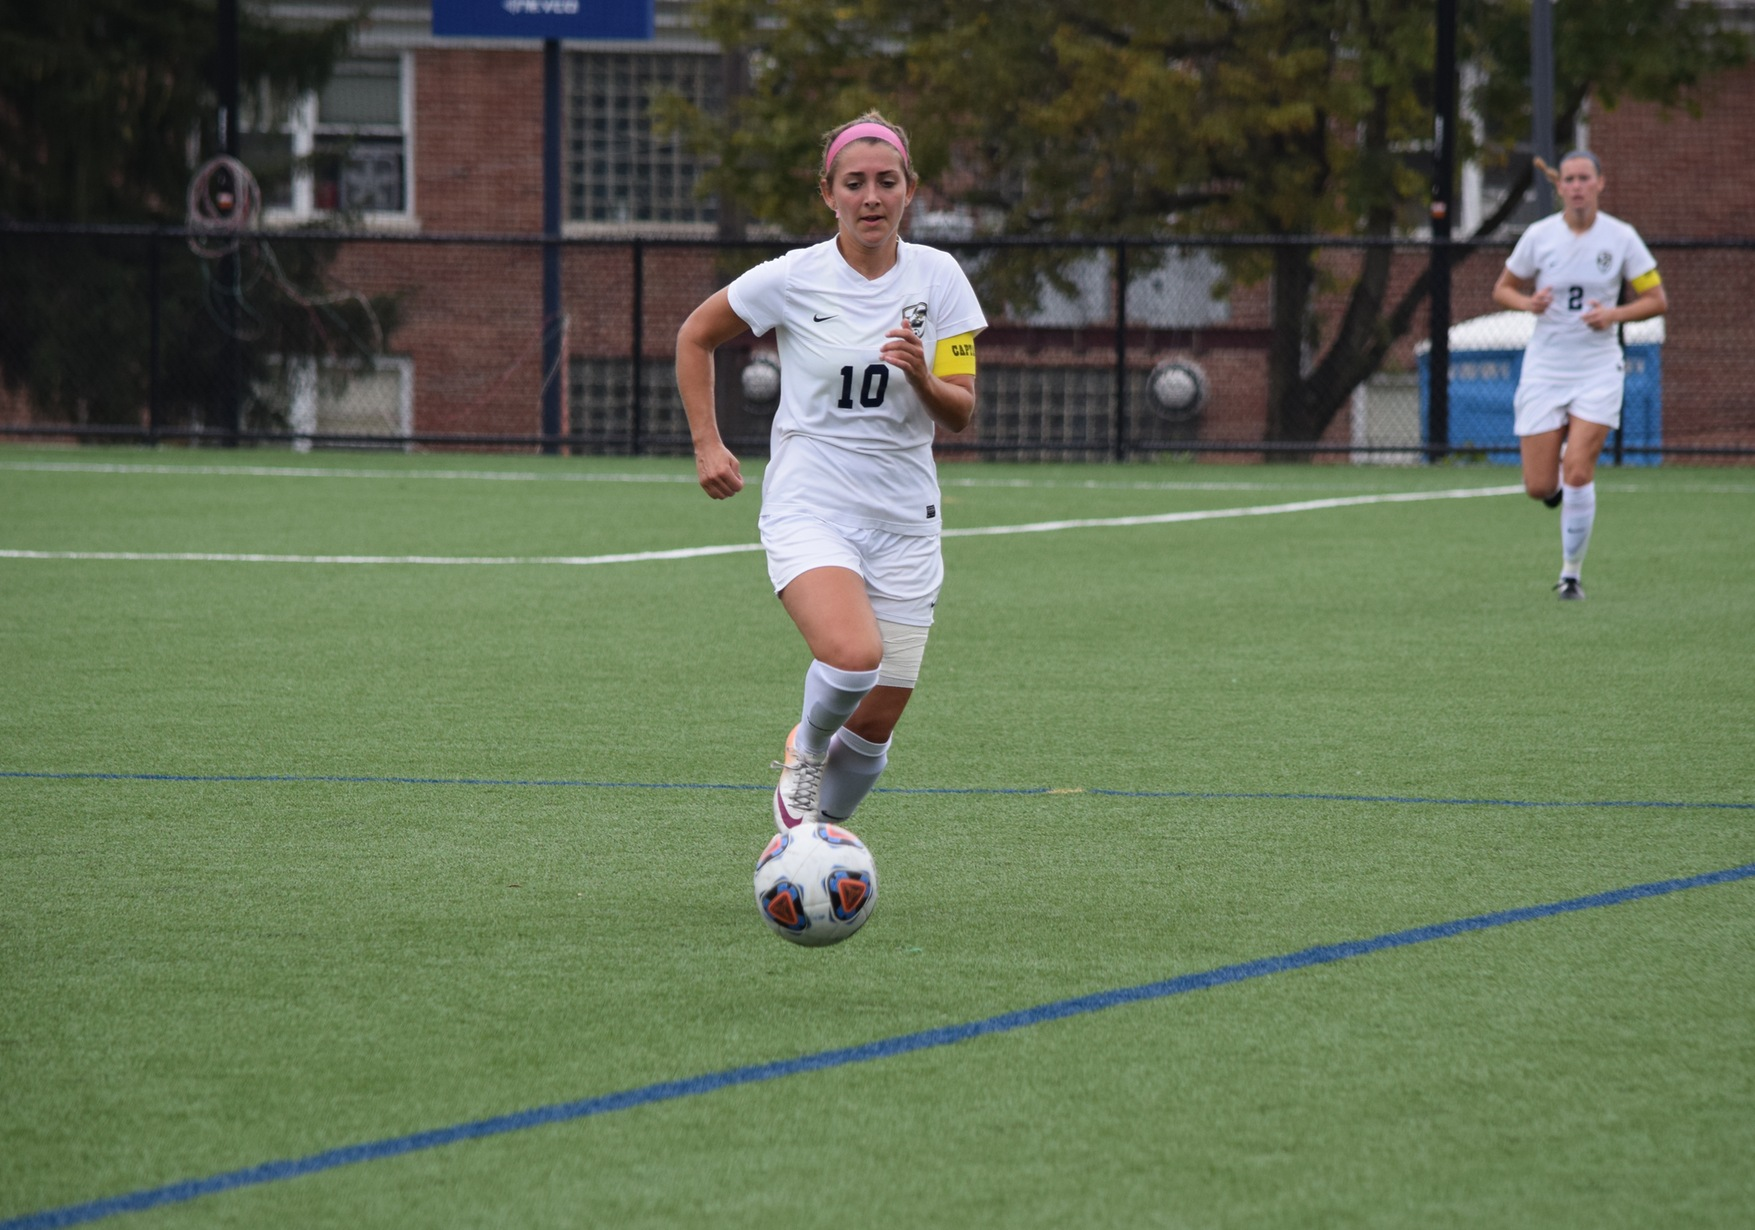 Christensen's OT Goal Leads JC Past Waynesburg